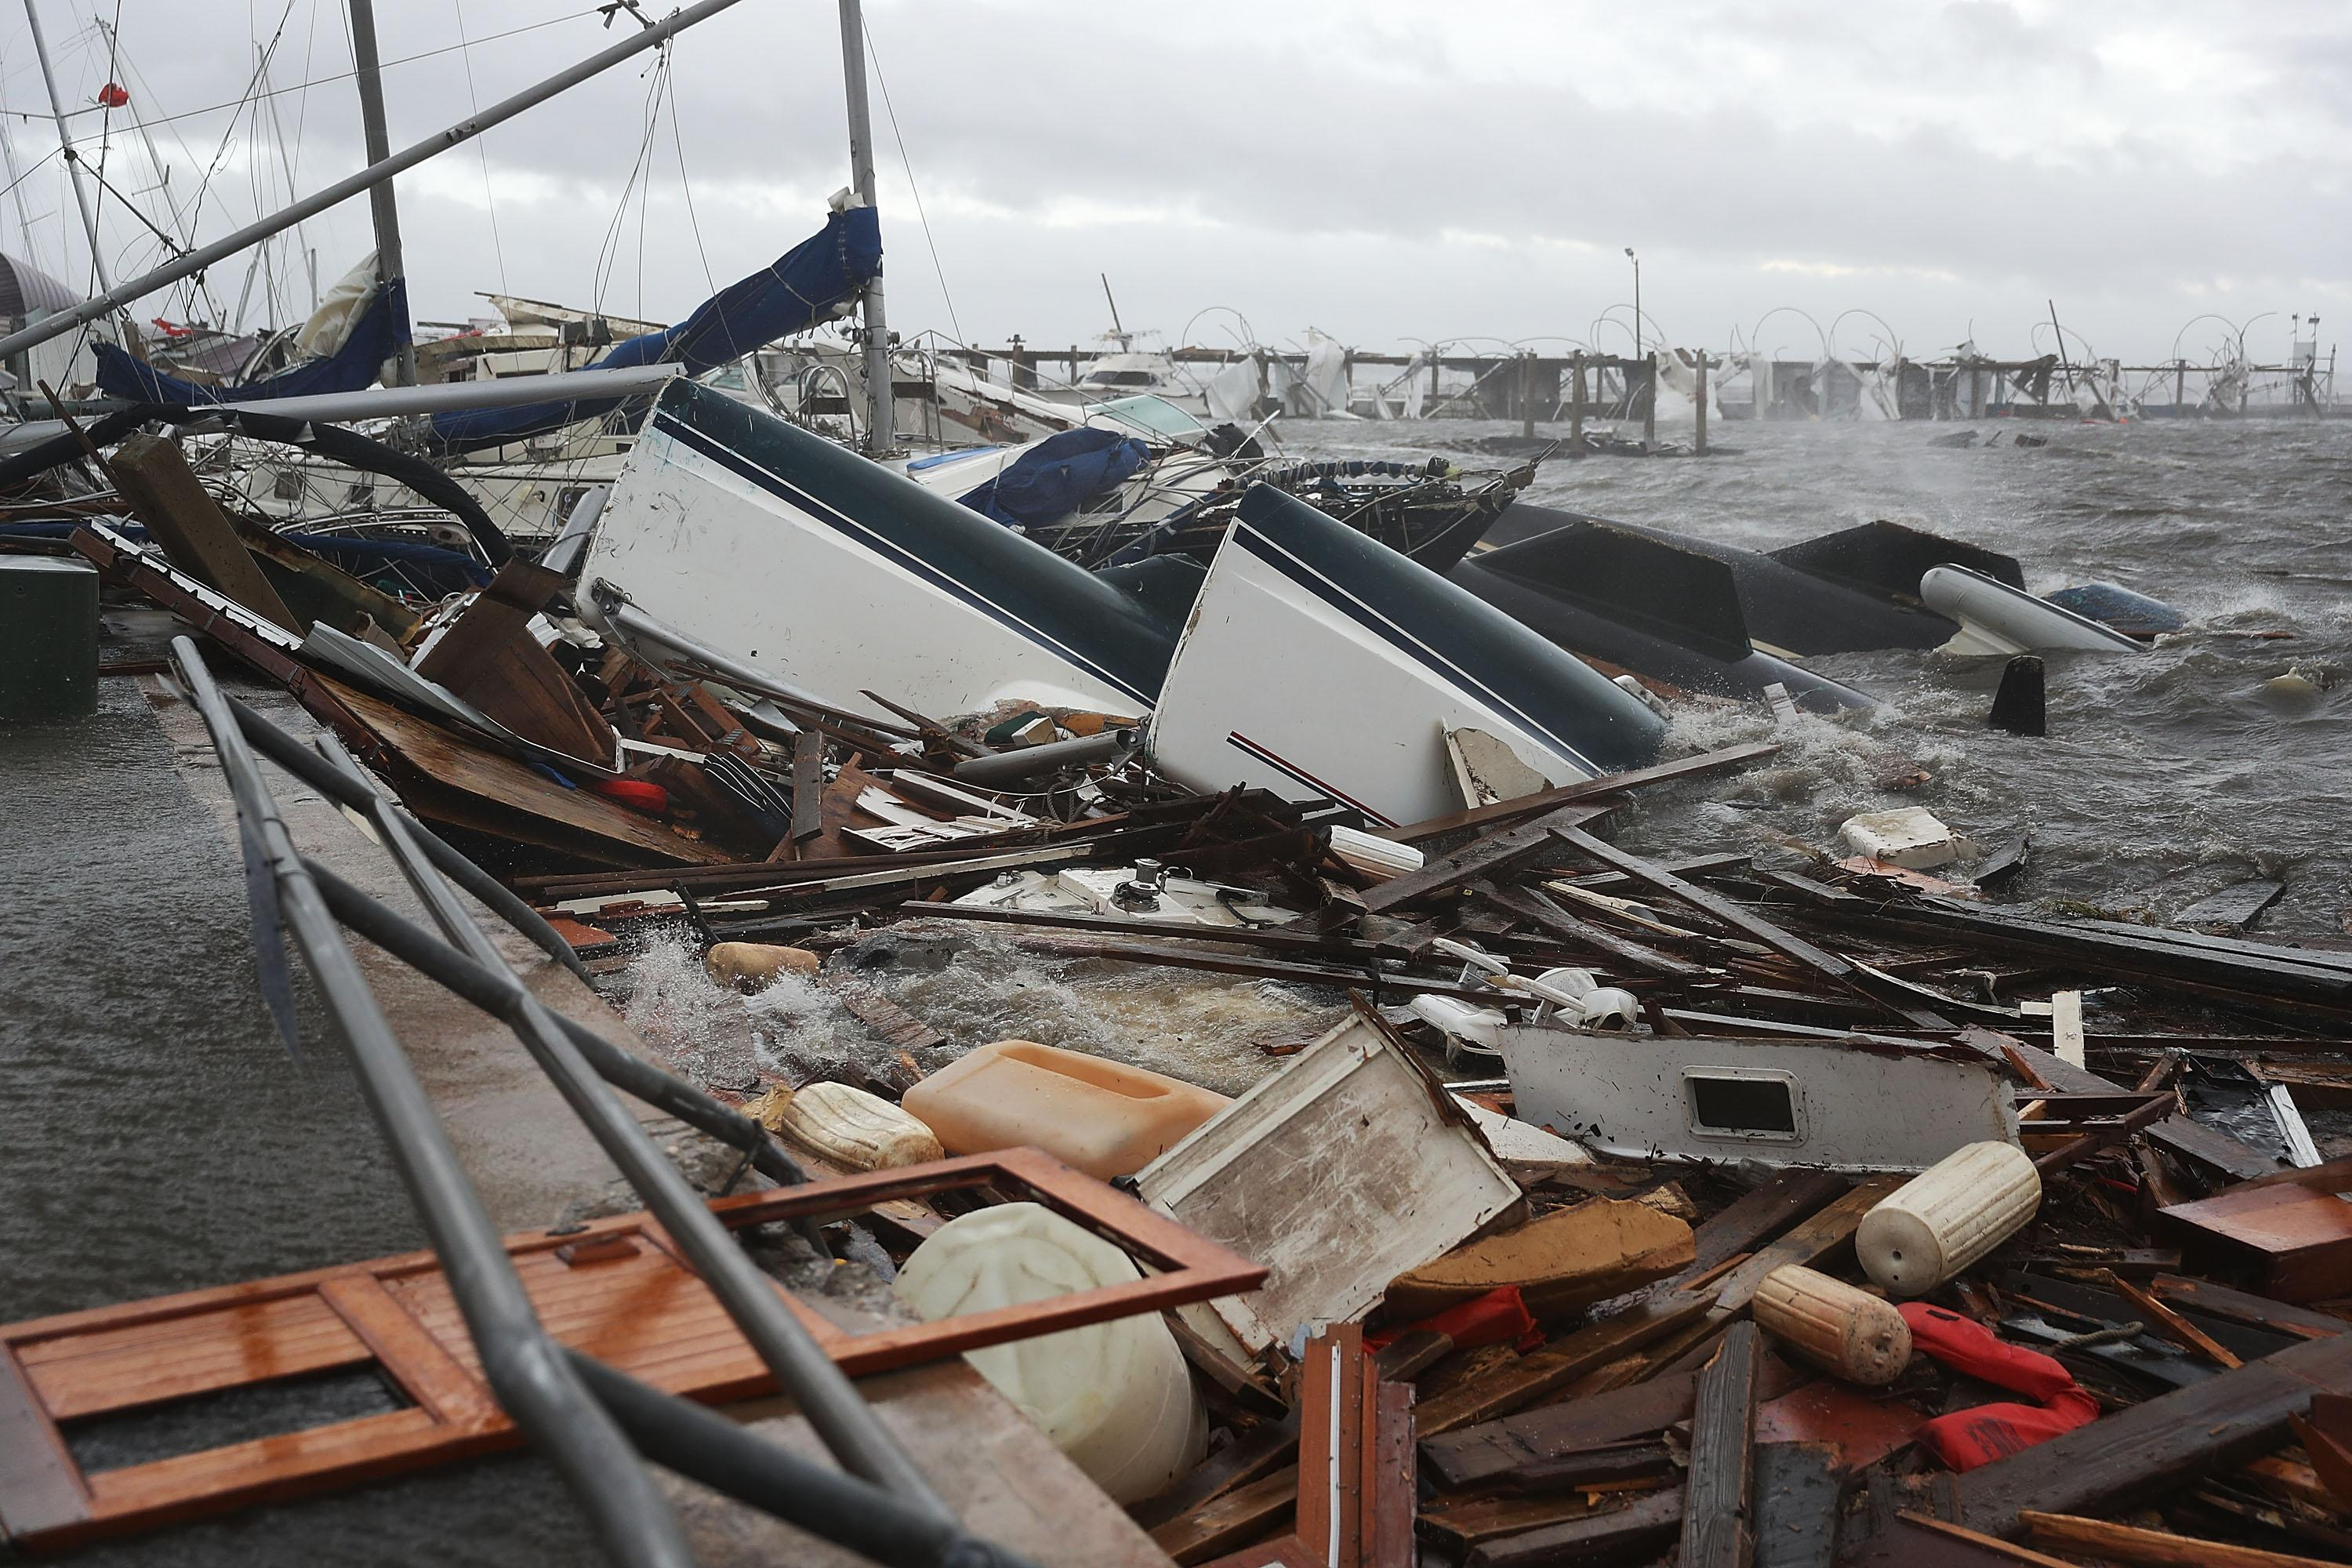 <p>Boats that were docked are seen in a pile of rubble after hurricane Michael passed through the downtown area on Oct. 10, 2018 in Panama City, Fla. (Photo: Joe Raedle/Getty Images) </p>